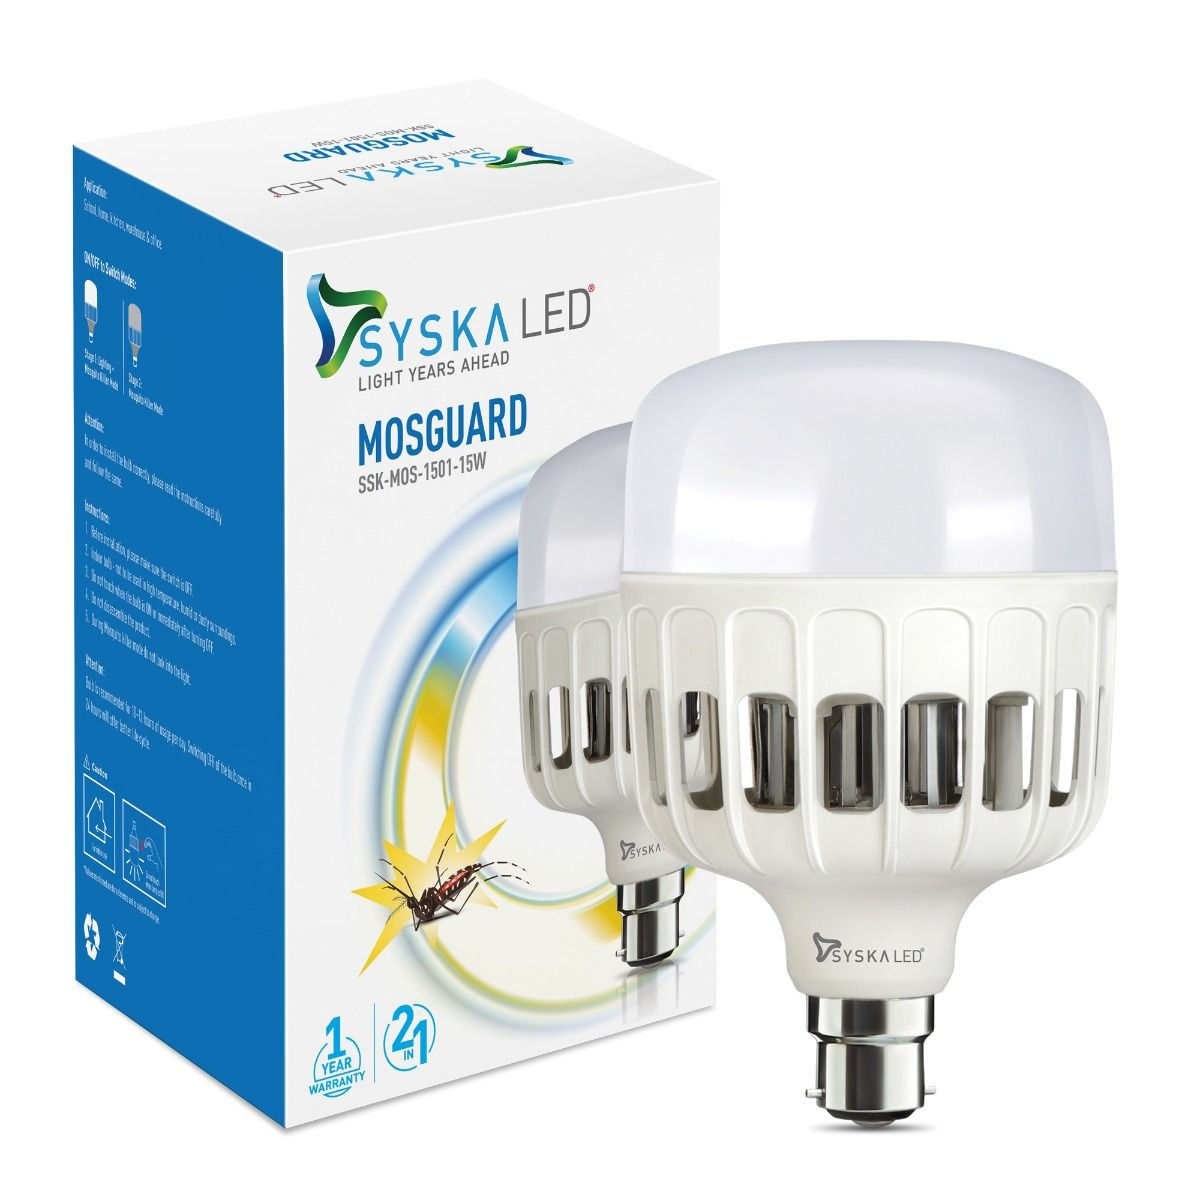 Mosguard Anti-Mosquito 15W Led Bulb